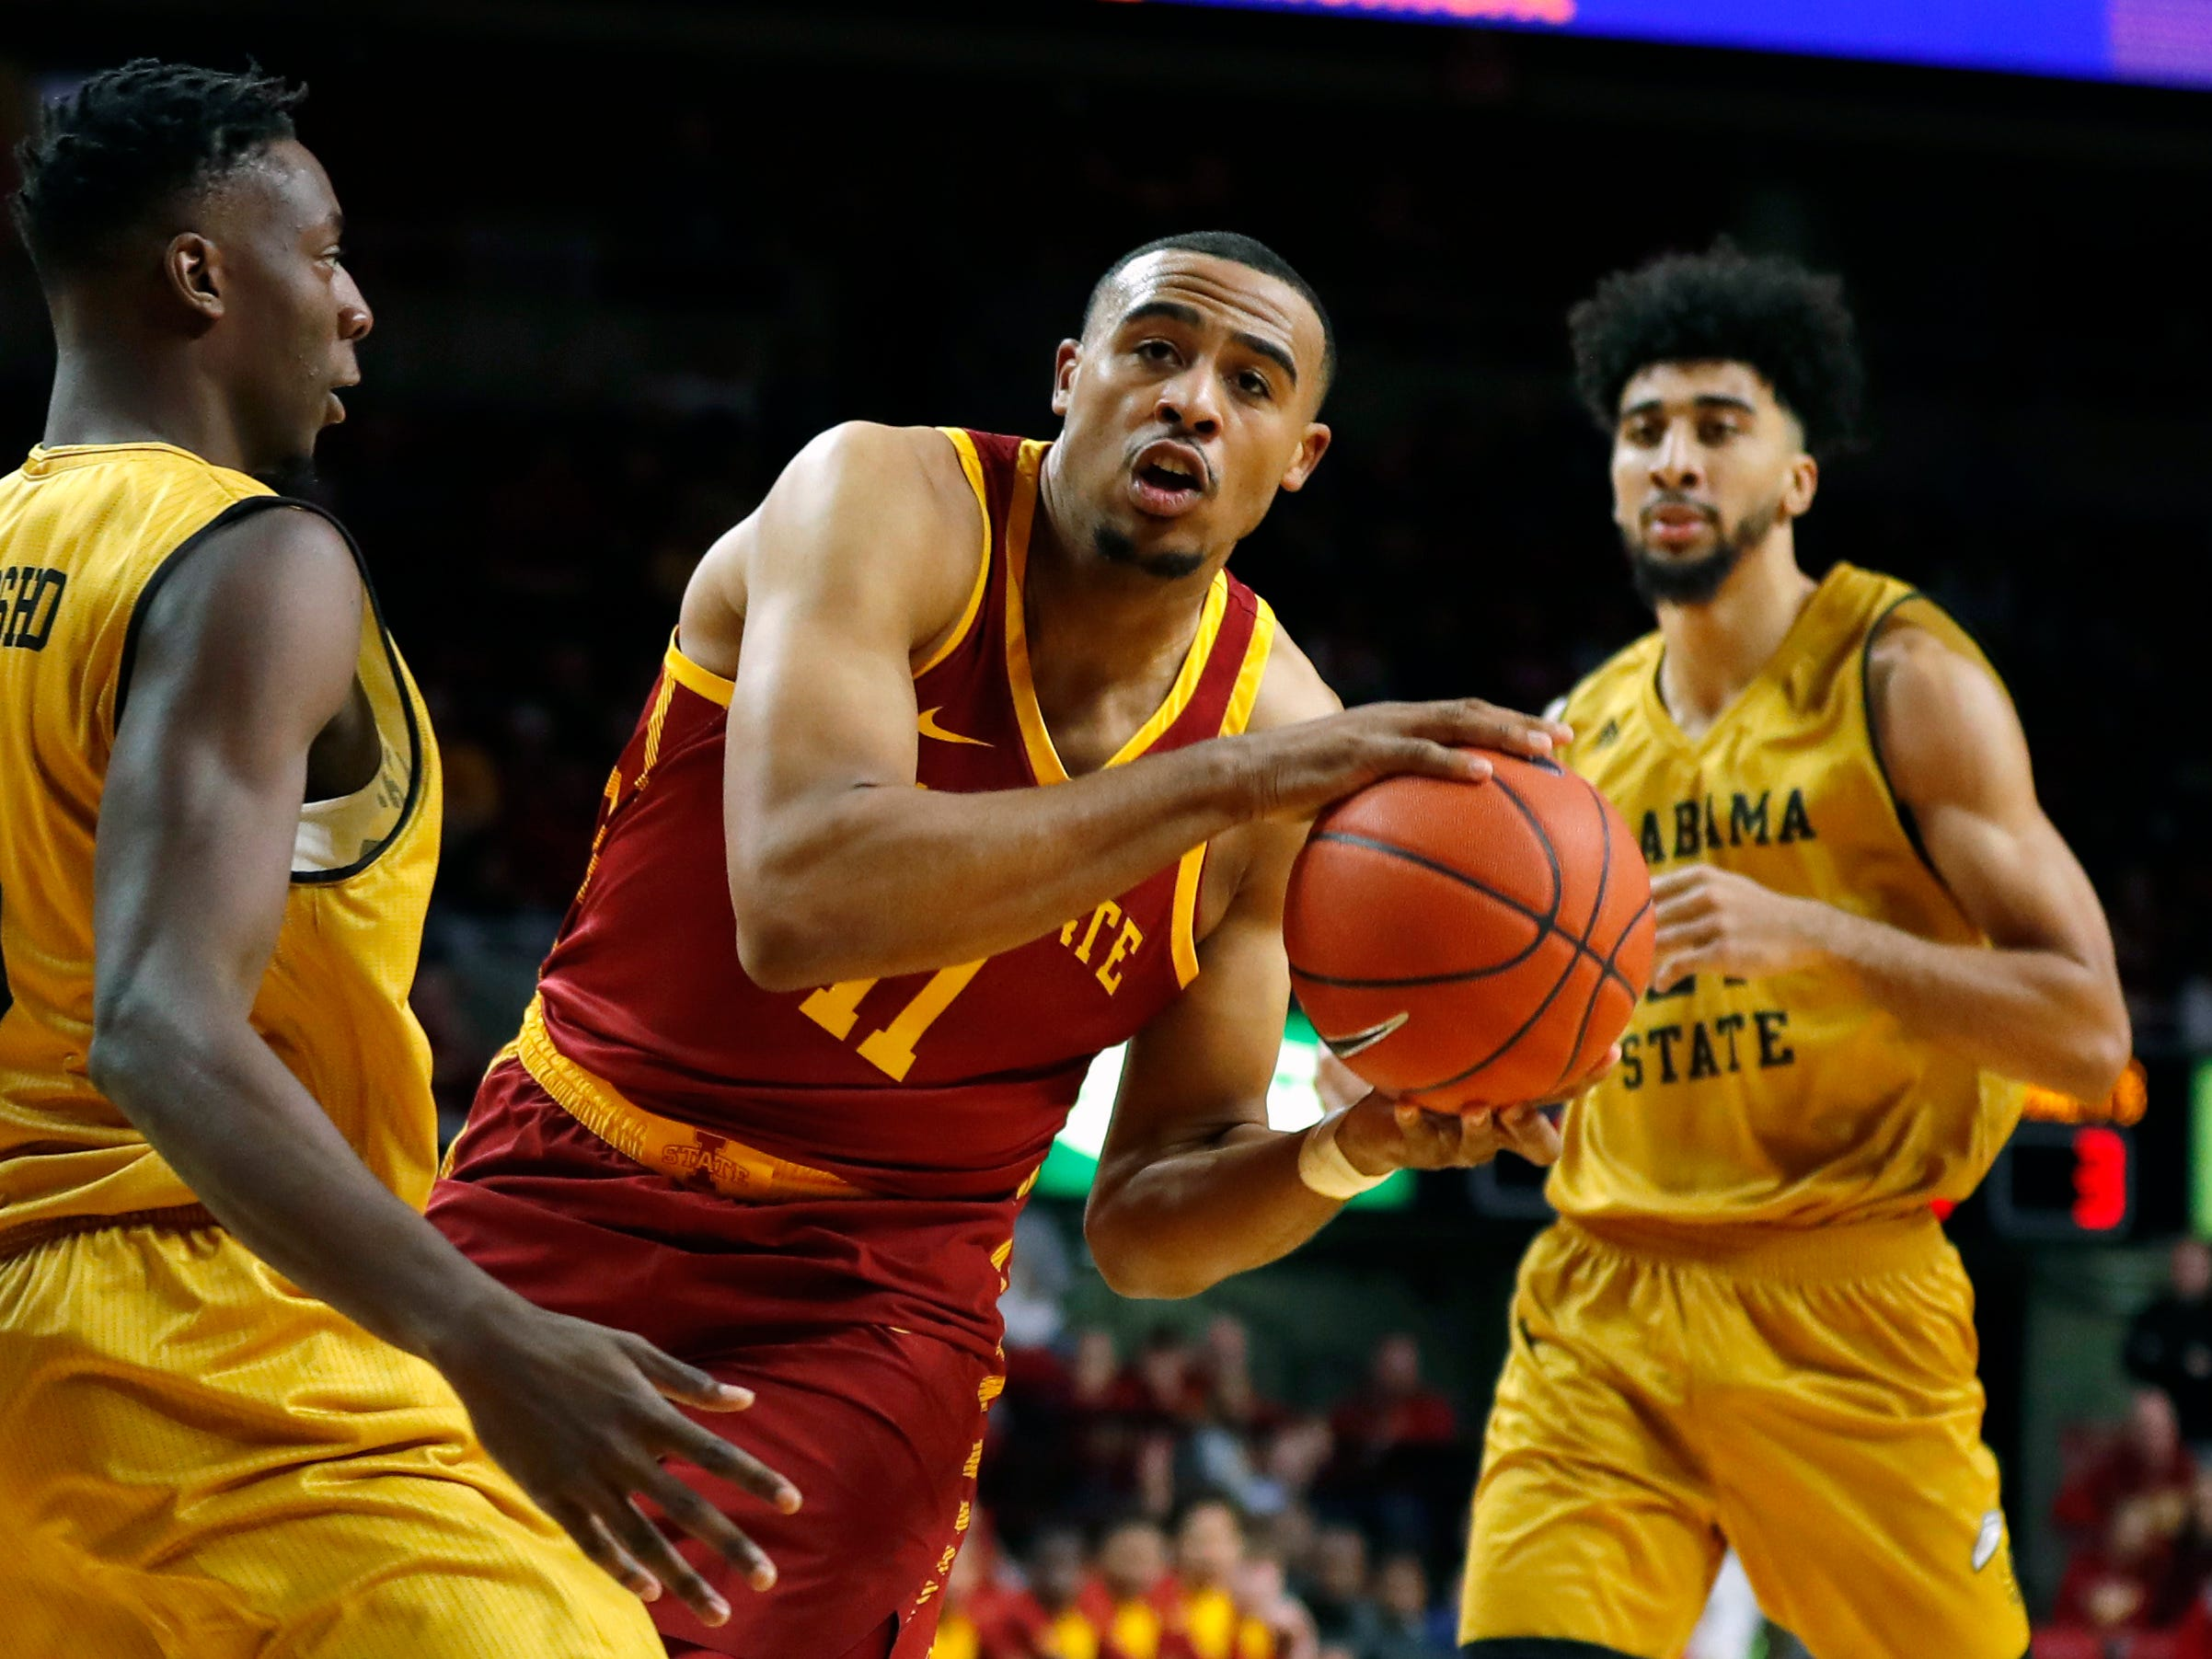 Iowa State guard Talen Horton-Tucker (11) drives to the basket past Alabama State guard Tobi Ewuosho, left, during the first half of an NCAA college basketball game, Tuesday, Nov. 6, 2018, in Ames, Iowa. (AP Photo/Charlie Neibergall)